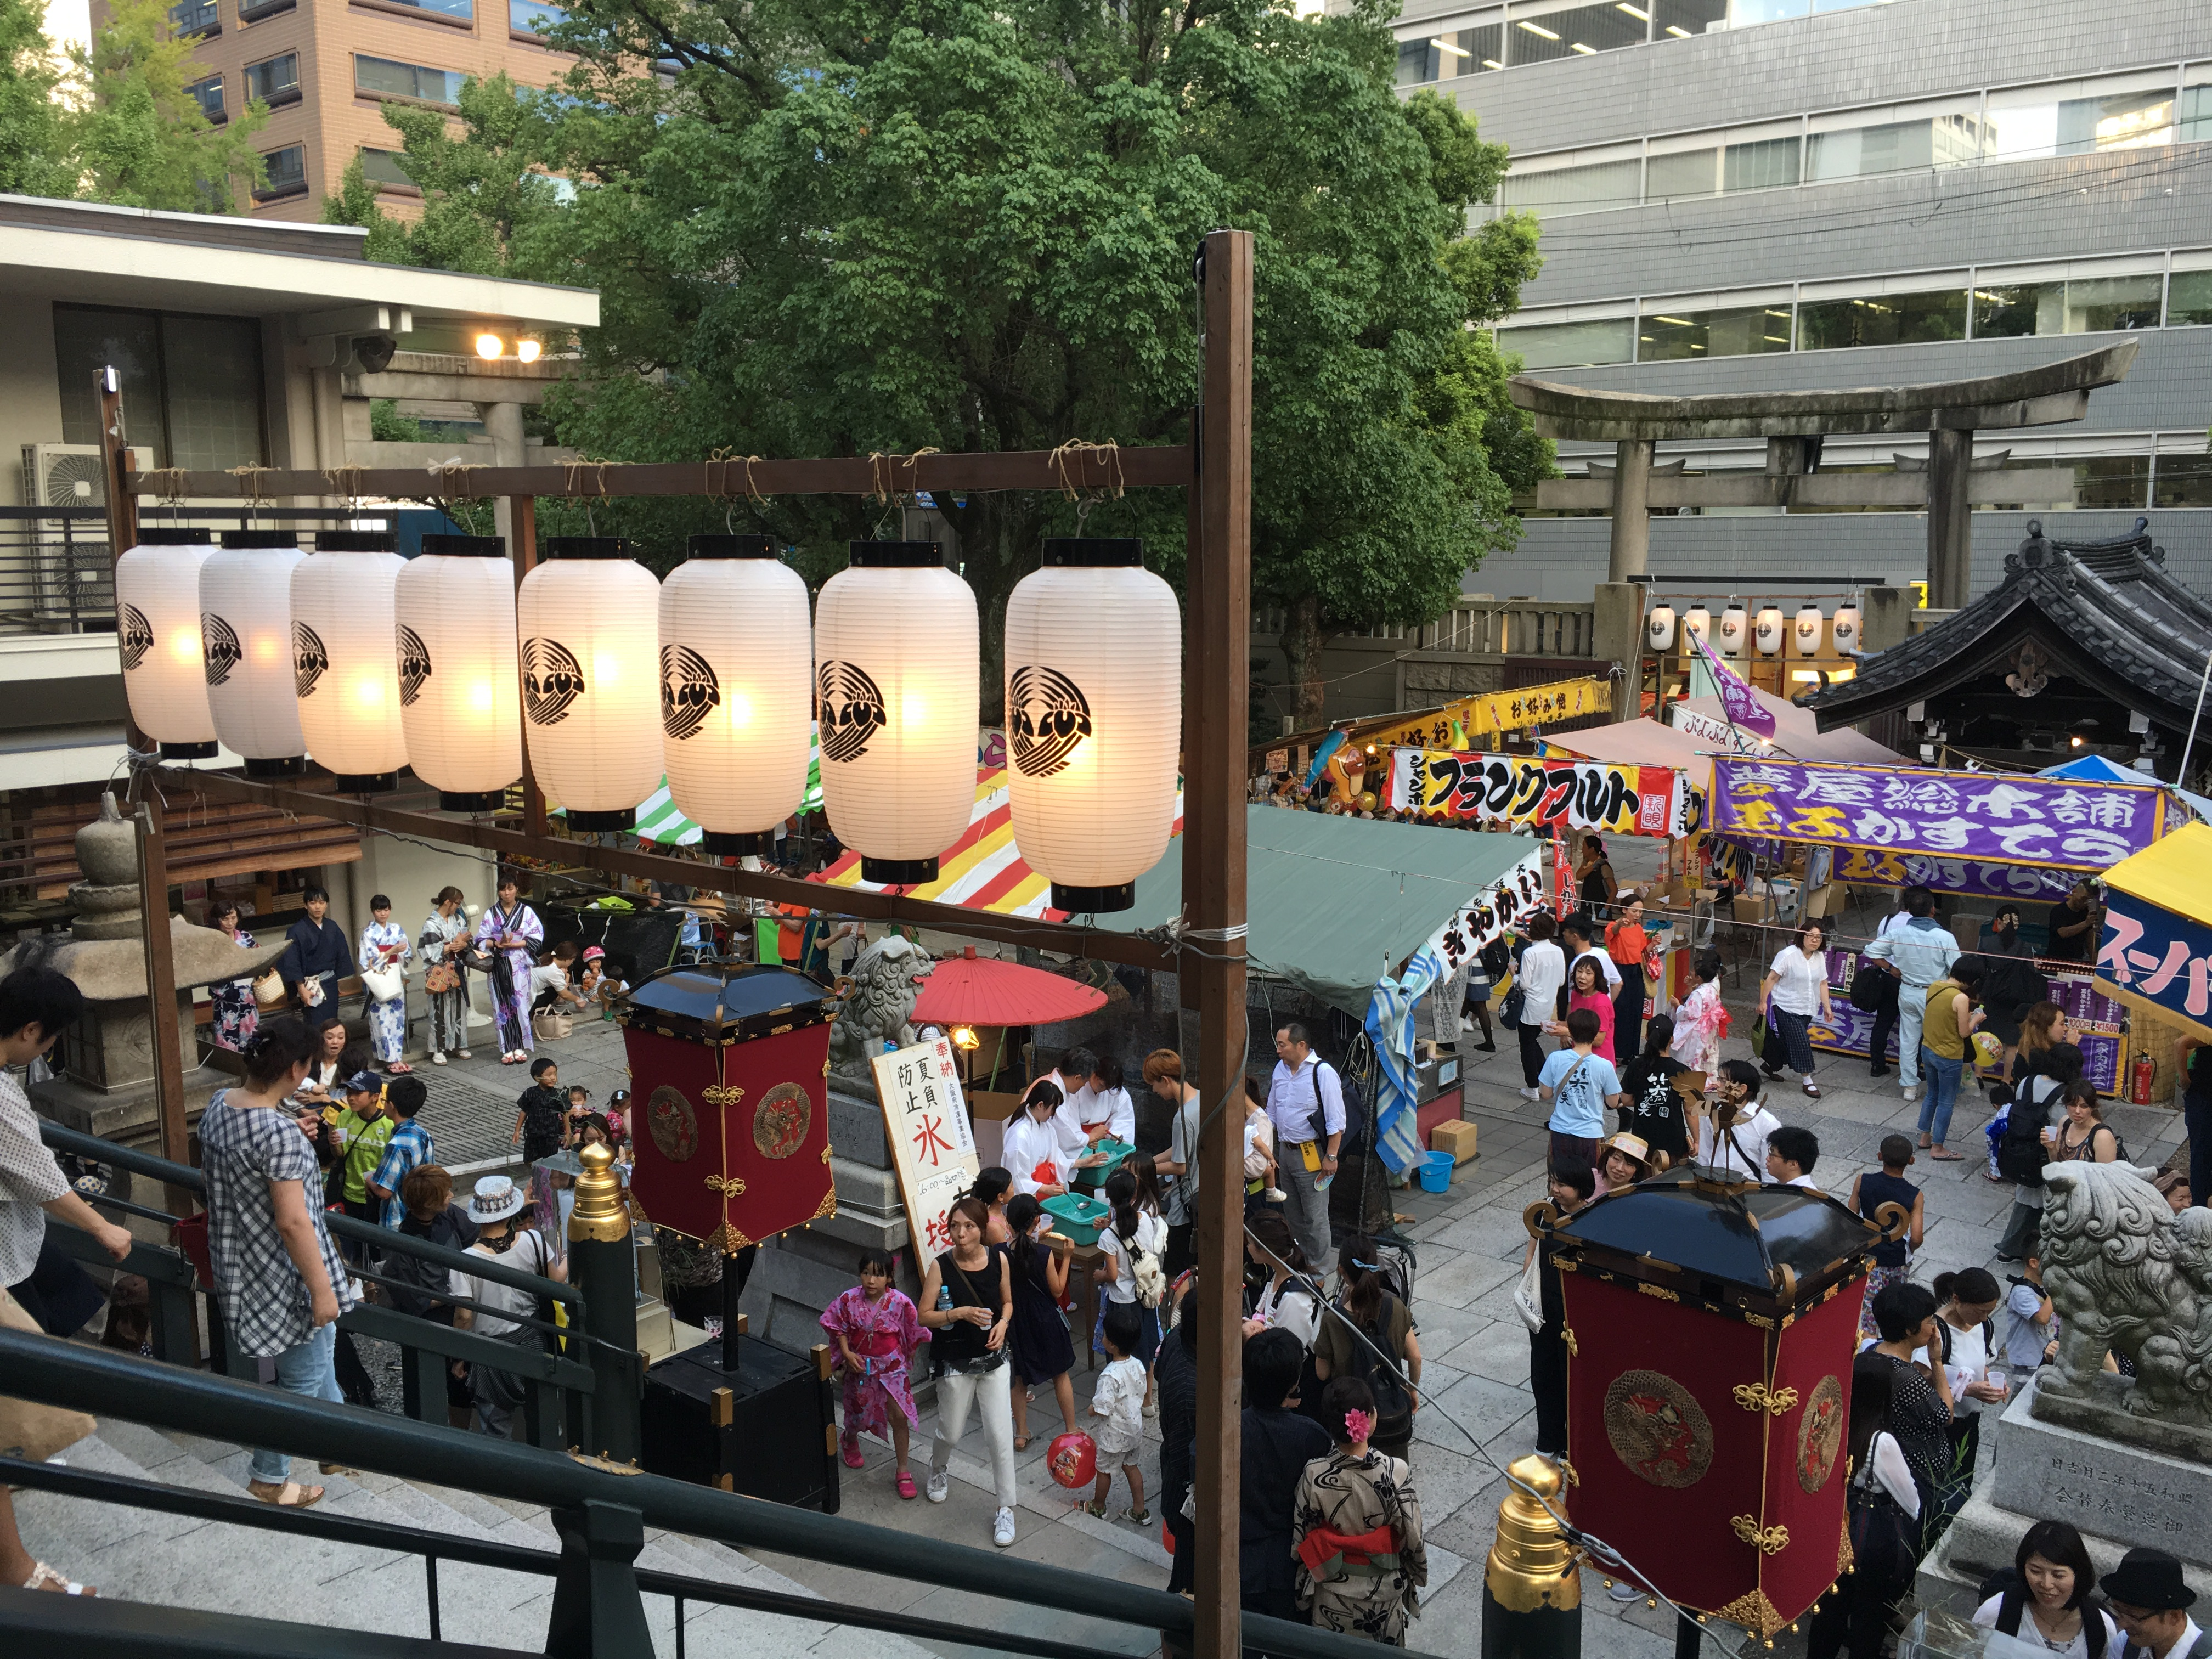 crowds of festival goers during Himuro Festival at Namba Shrine in Osaka